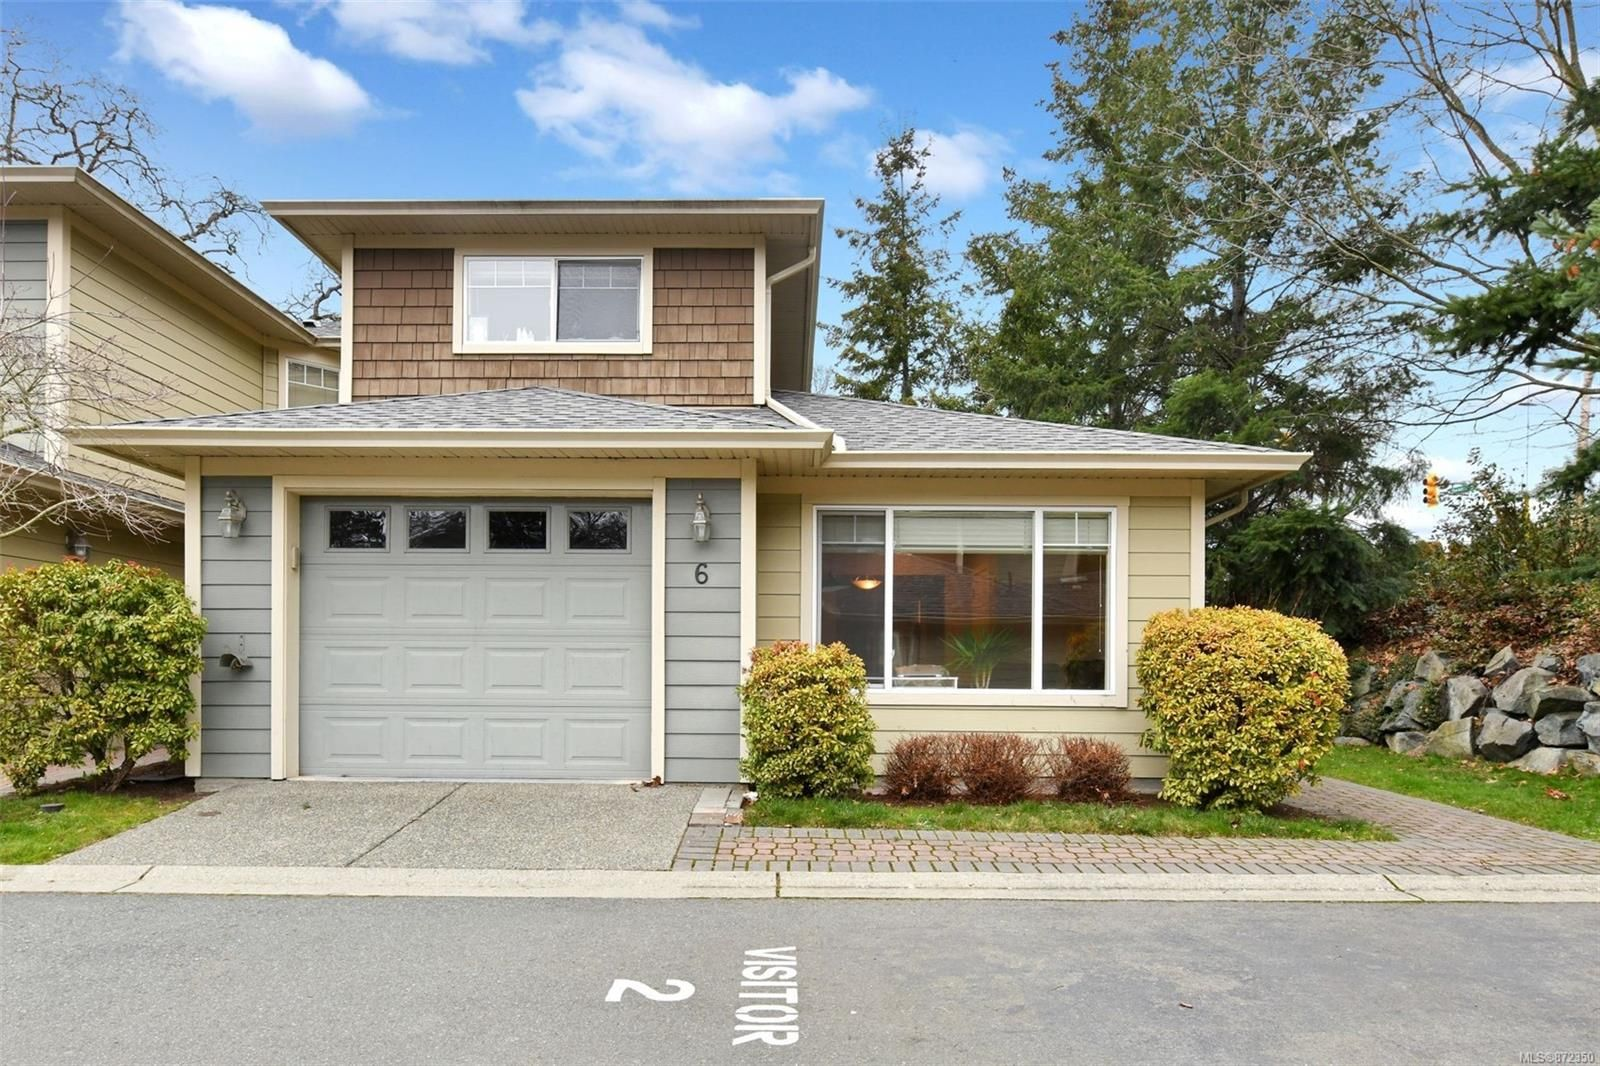 Main Photo: 6 4165 Rockhome Gdns in : SE High Quadra Row/Townhouse for sale (Saanich East)  : MLS®# 872350